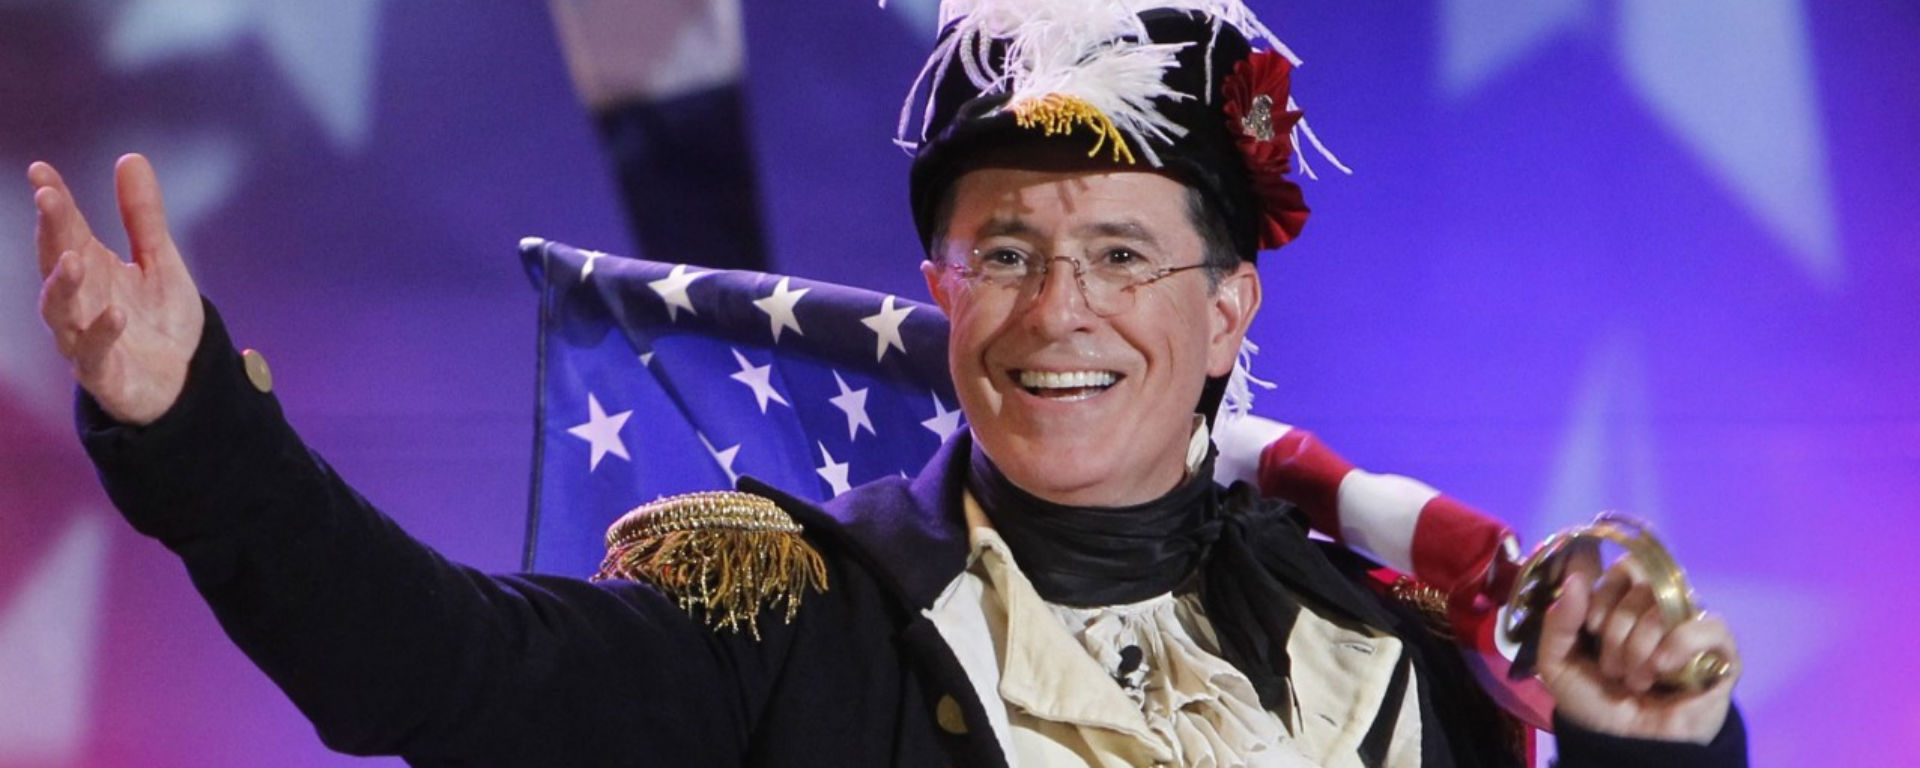 stephen colbert moving to cbs leaving comedy central feature image